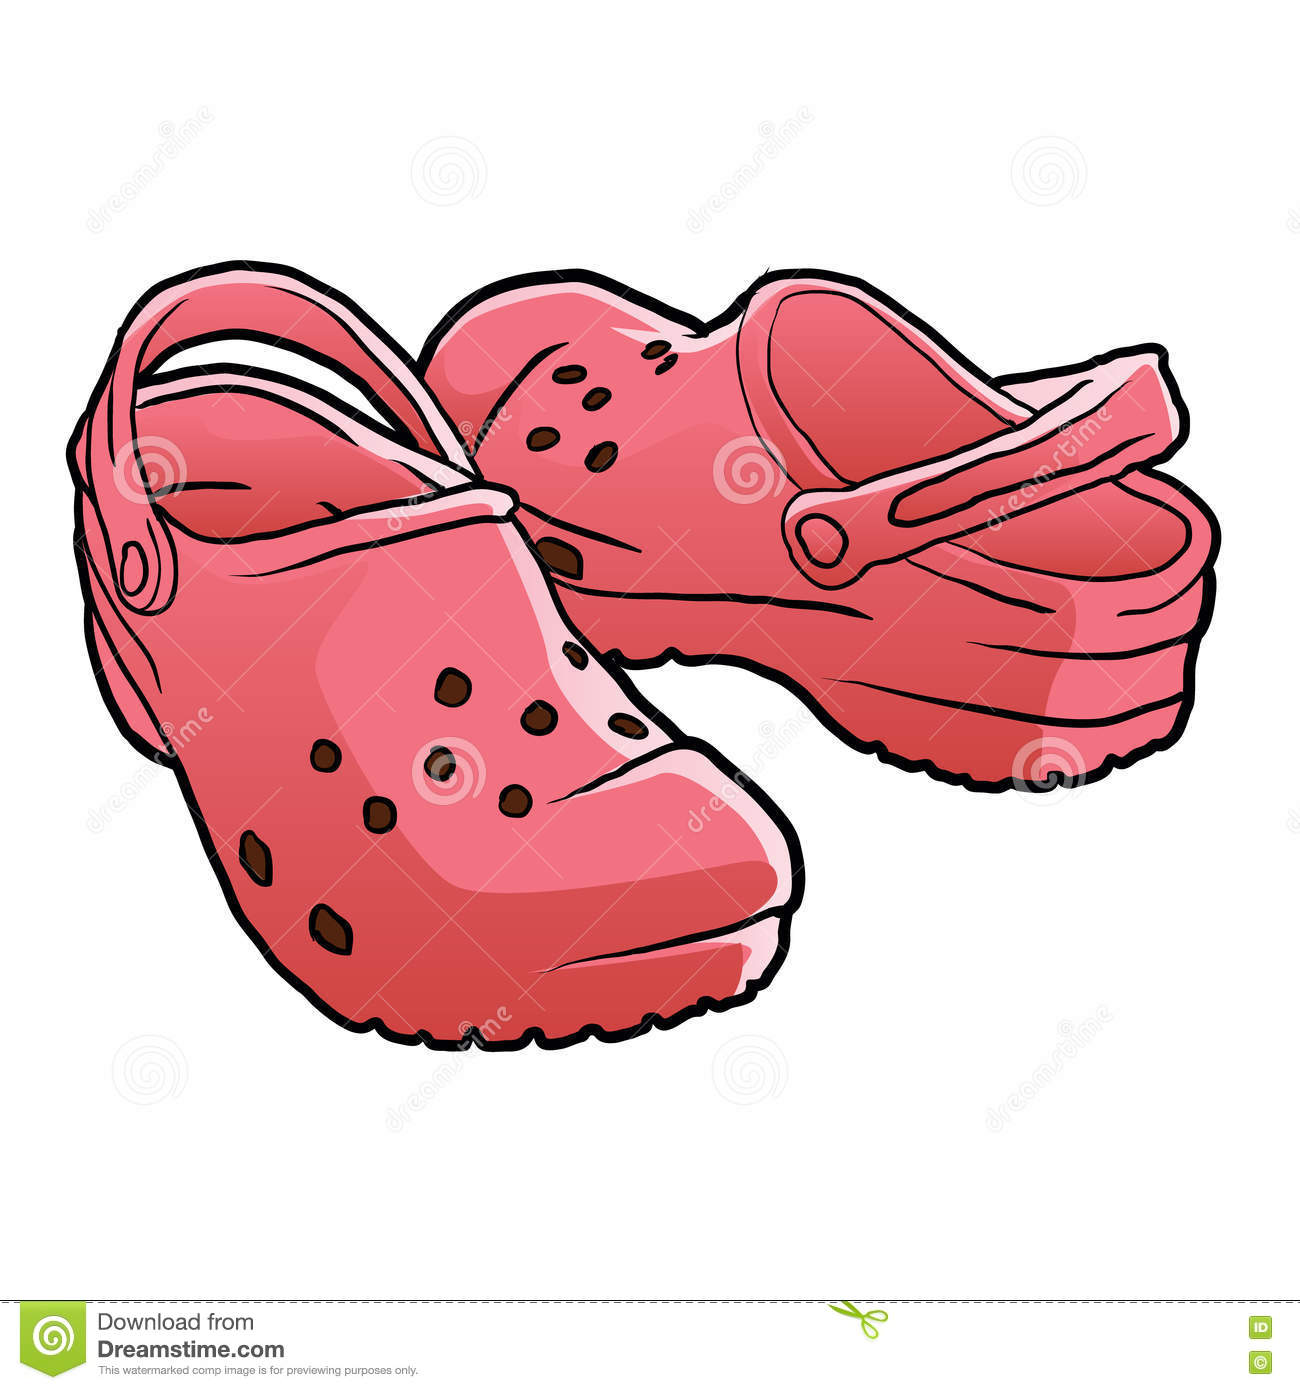 Crocs Shoes Clipart.